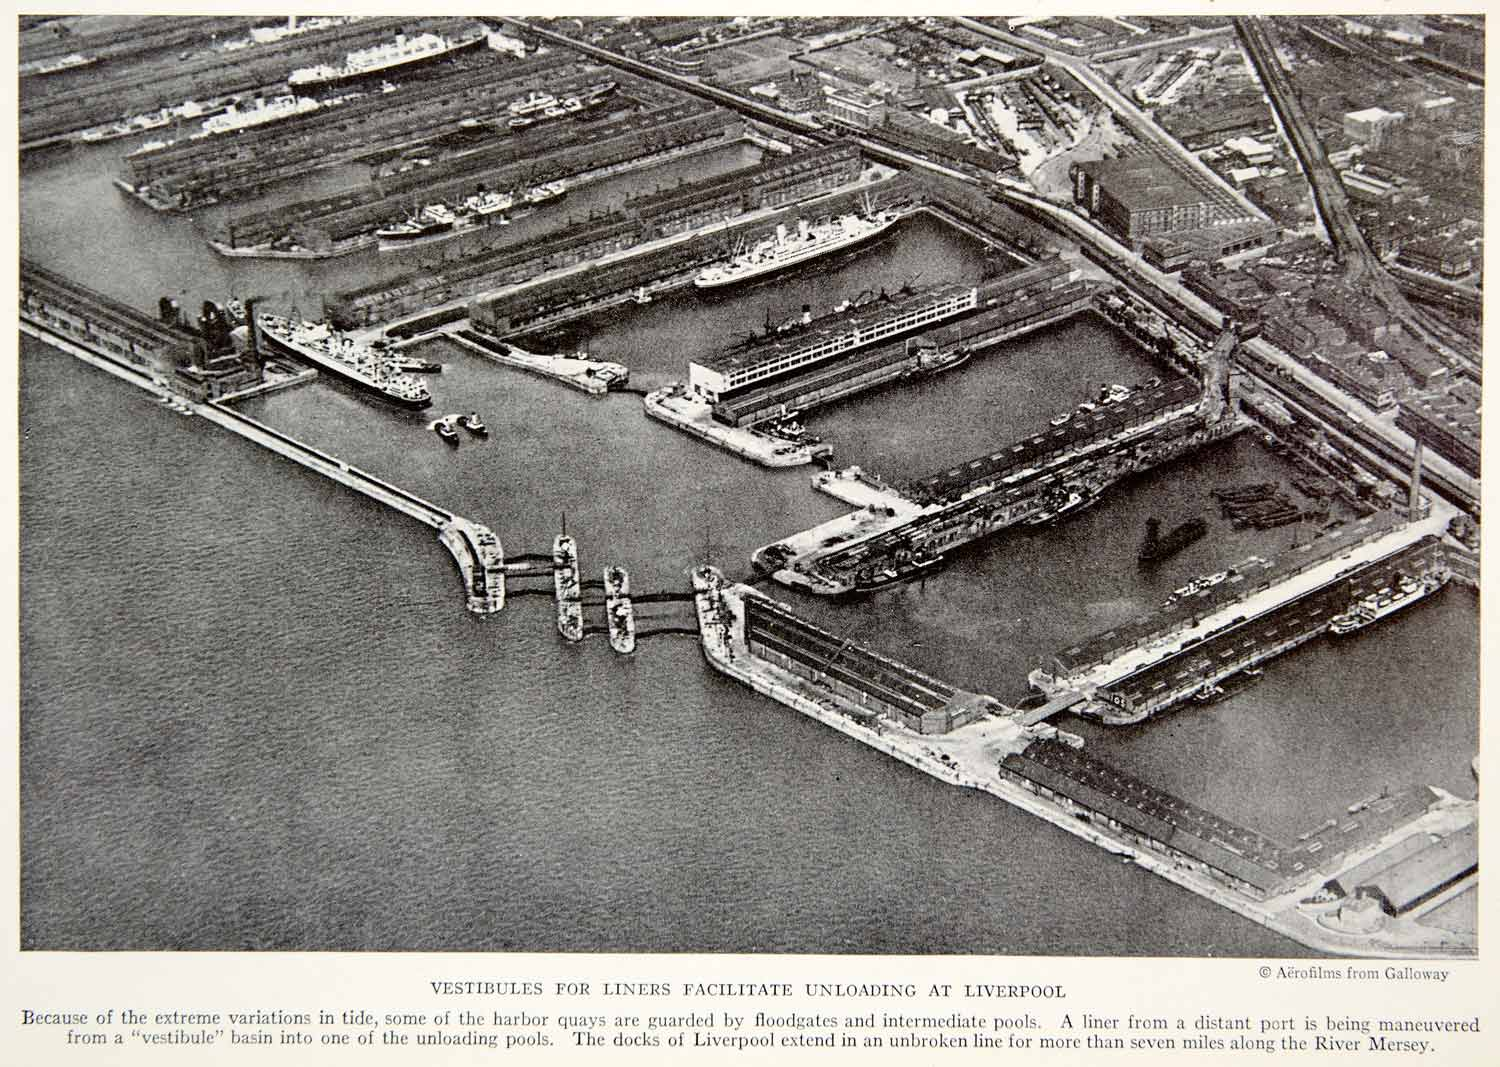 1934 Print Liverppol England Port Shipping Harbor Historical Image Aerial NGMA3